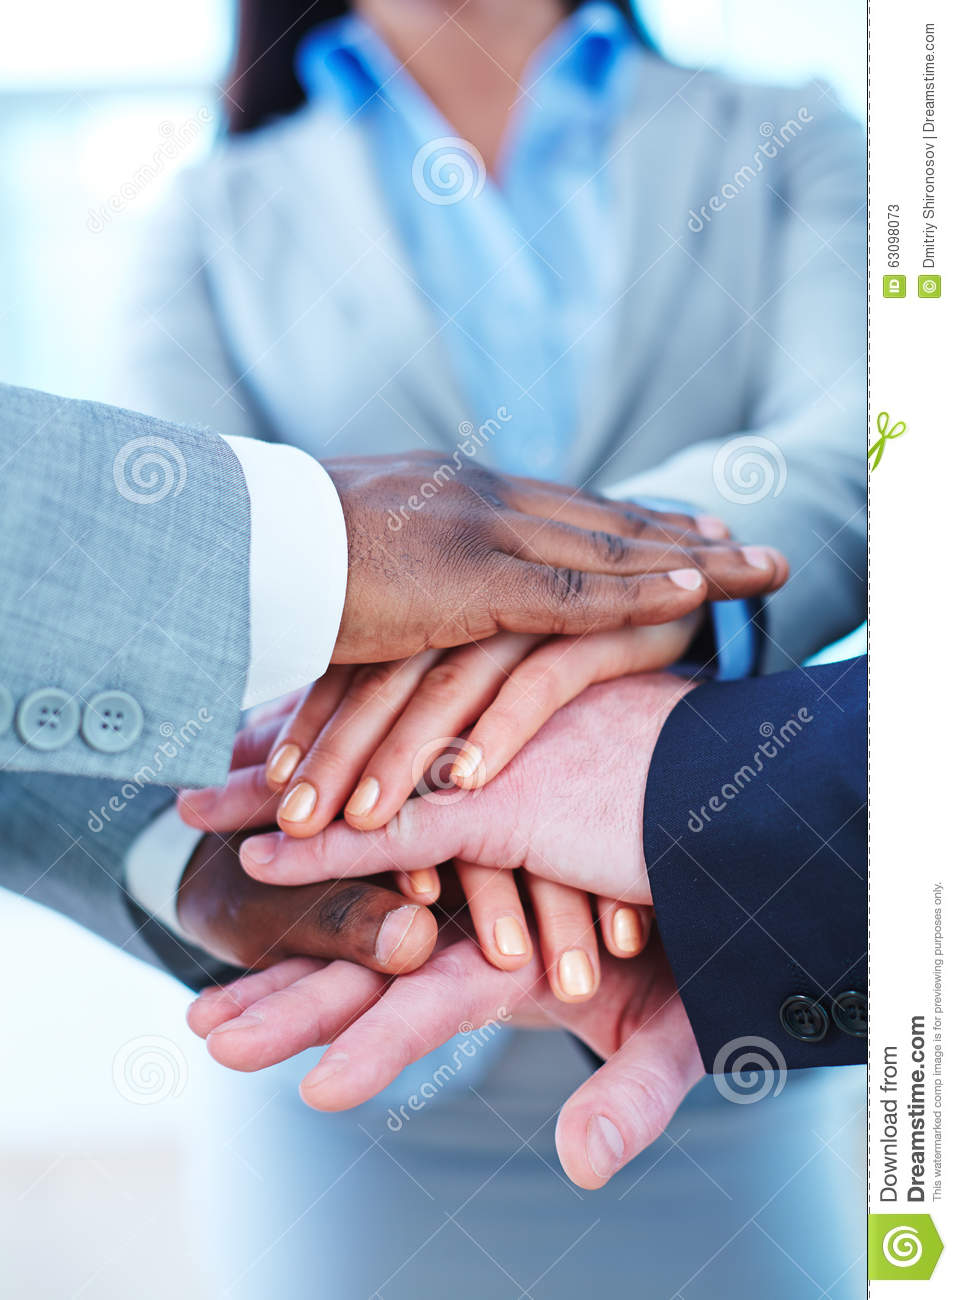 Hands of business partners